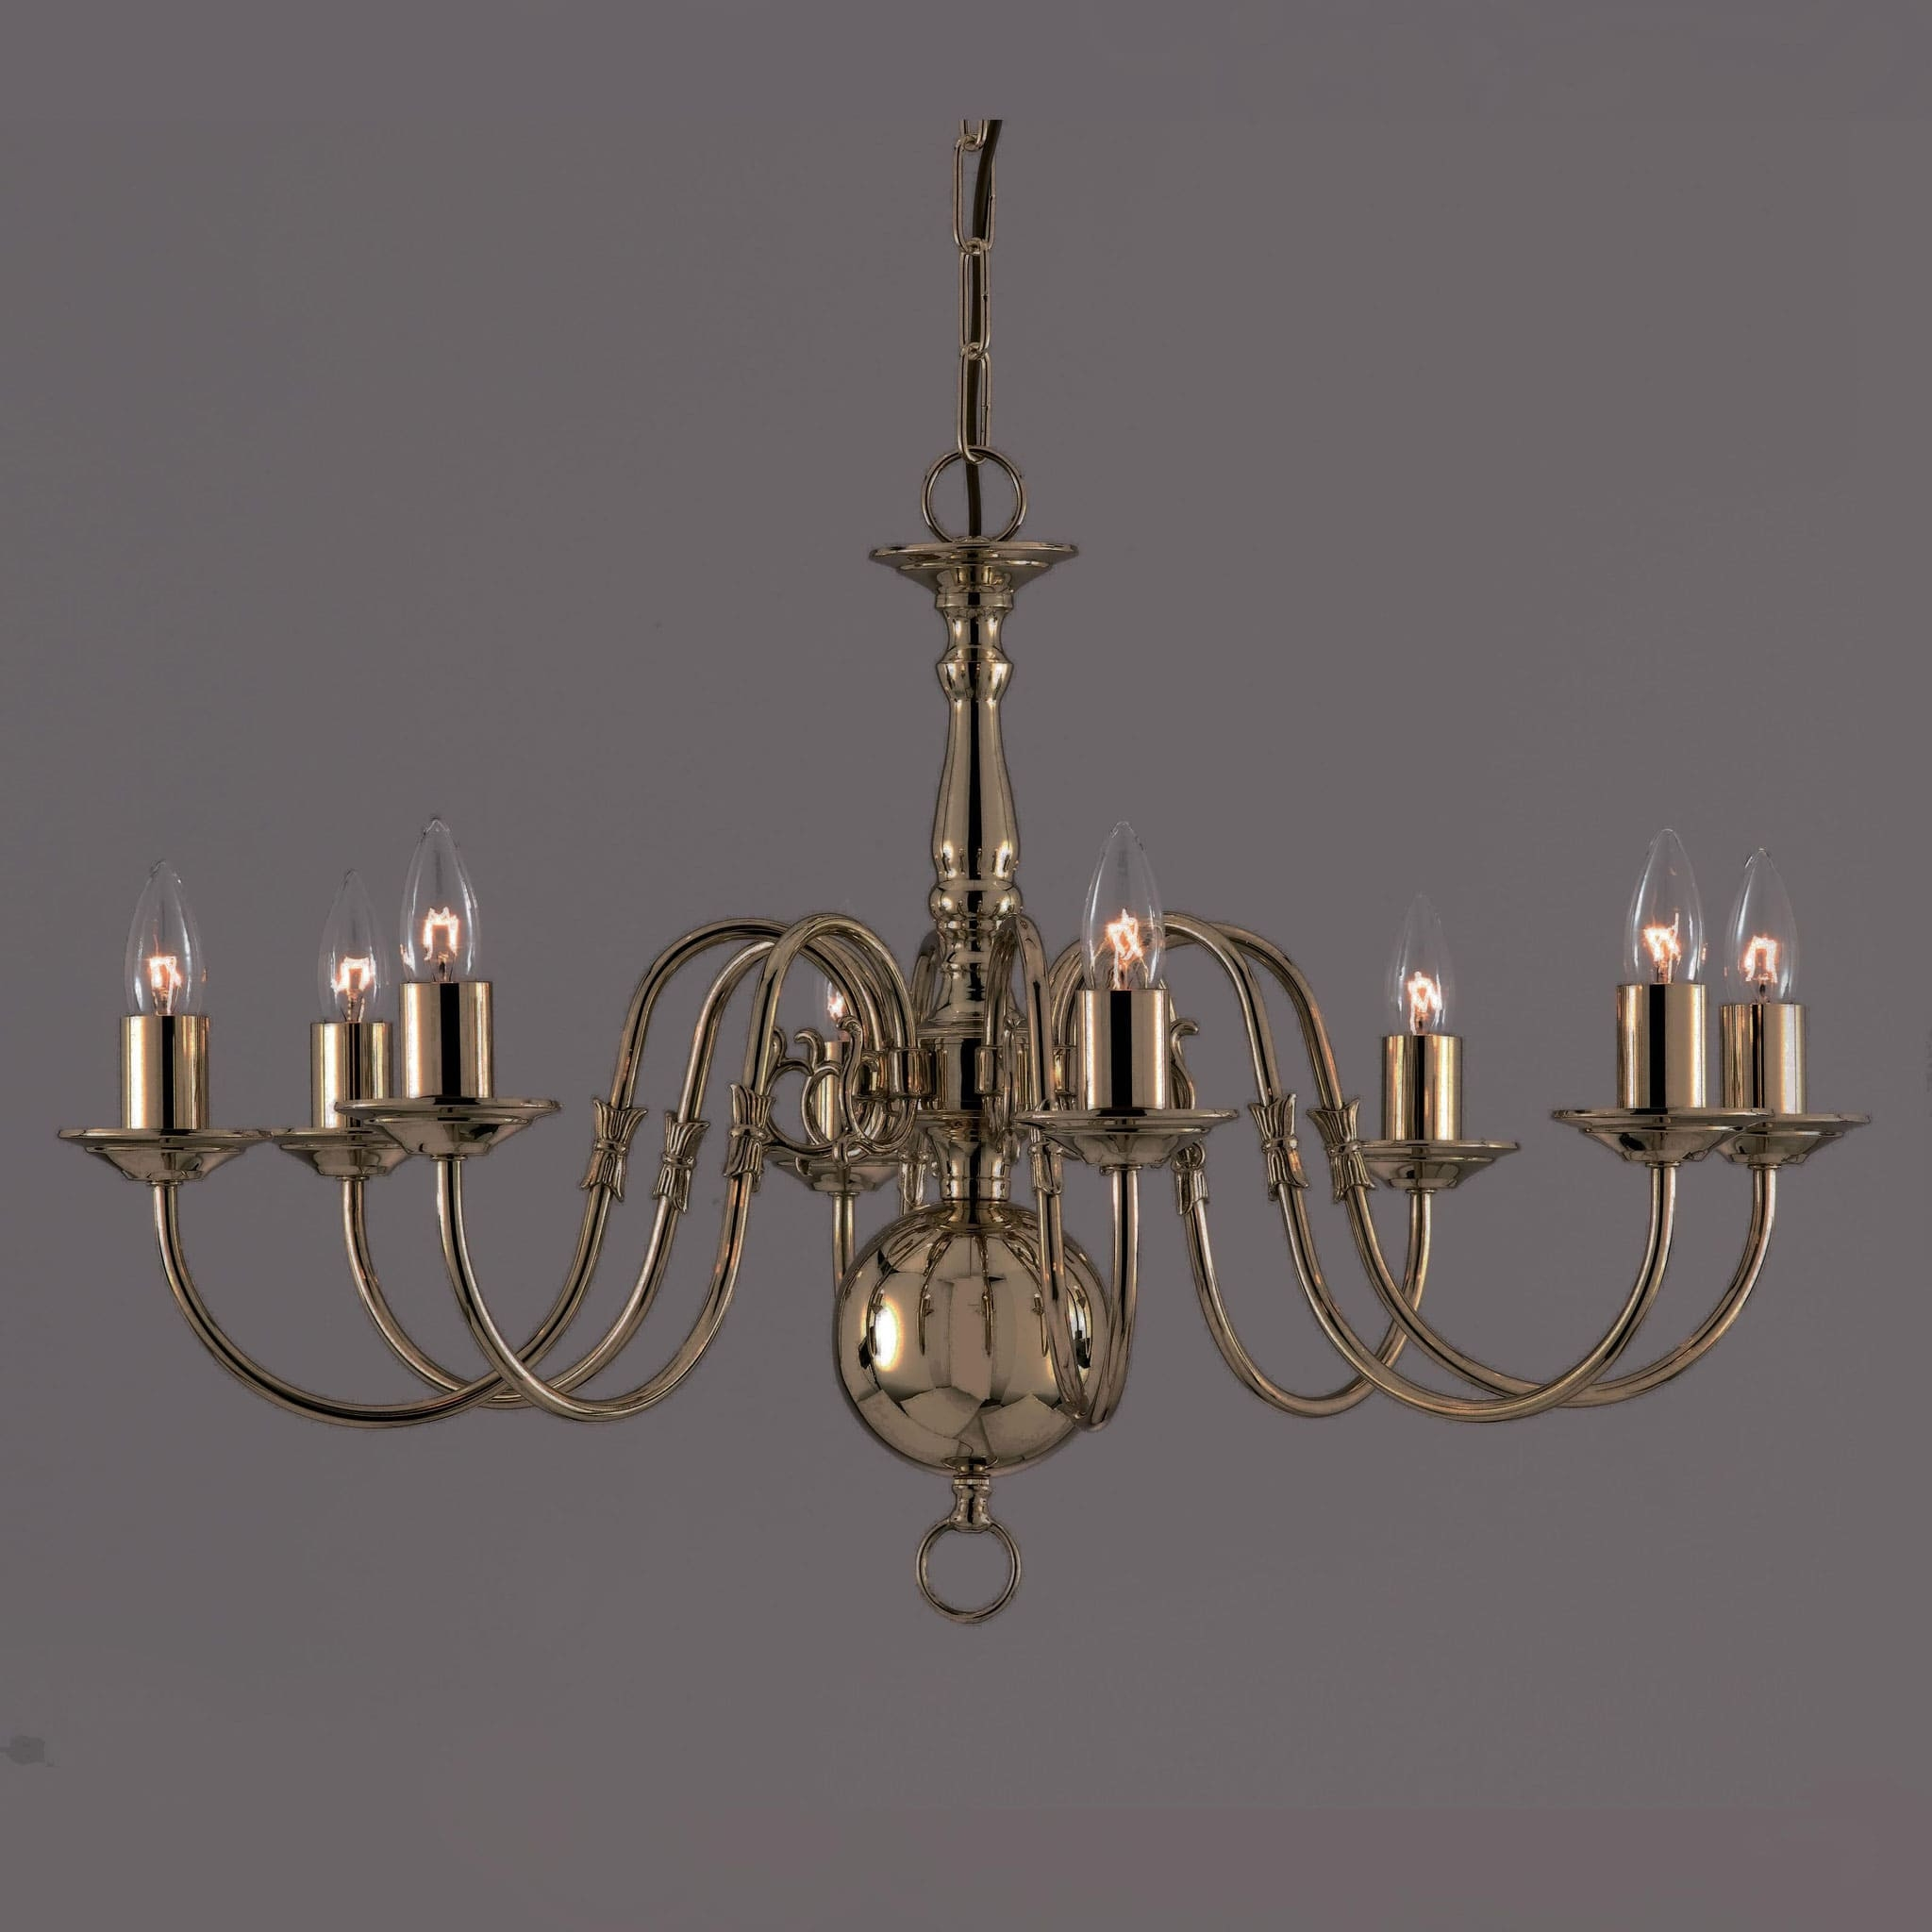 Chandelier Interesting Brass Chandelier Modern Brass Chandelier For Old Brass Chandeliers (Photo 1 of 25)